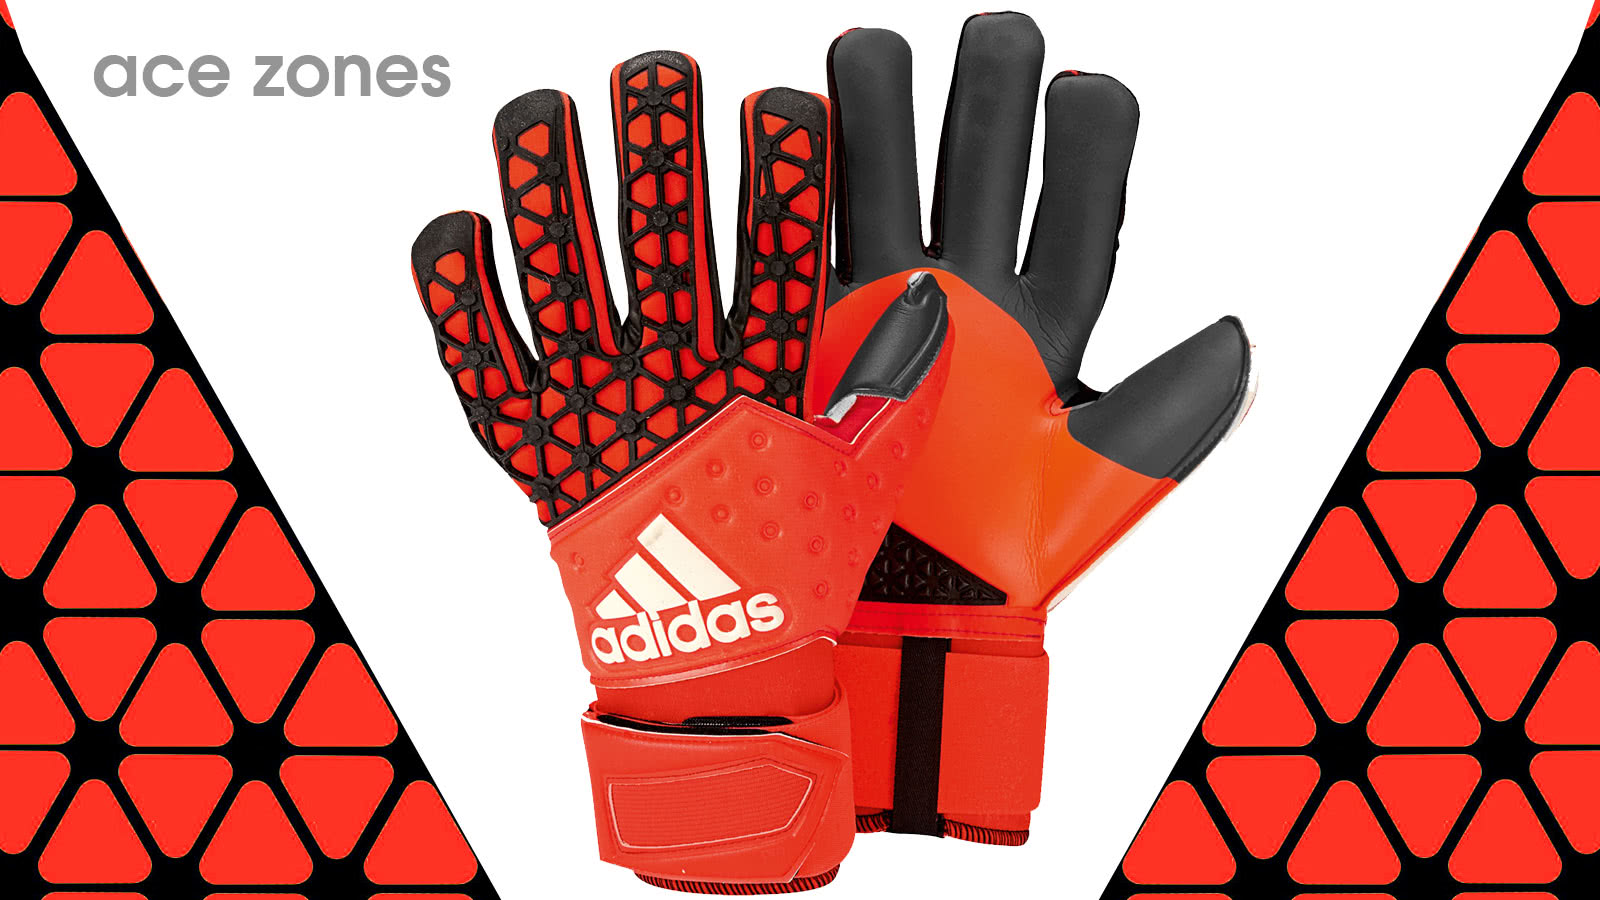 premium selection 19407 8e238 ... aliexpress die adidas ace zones pro ucl solar red bold orange black  4fba1 c0ae6